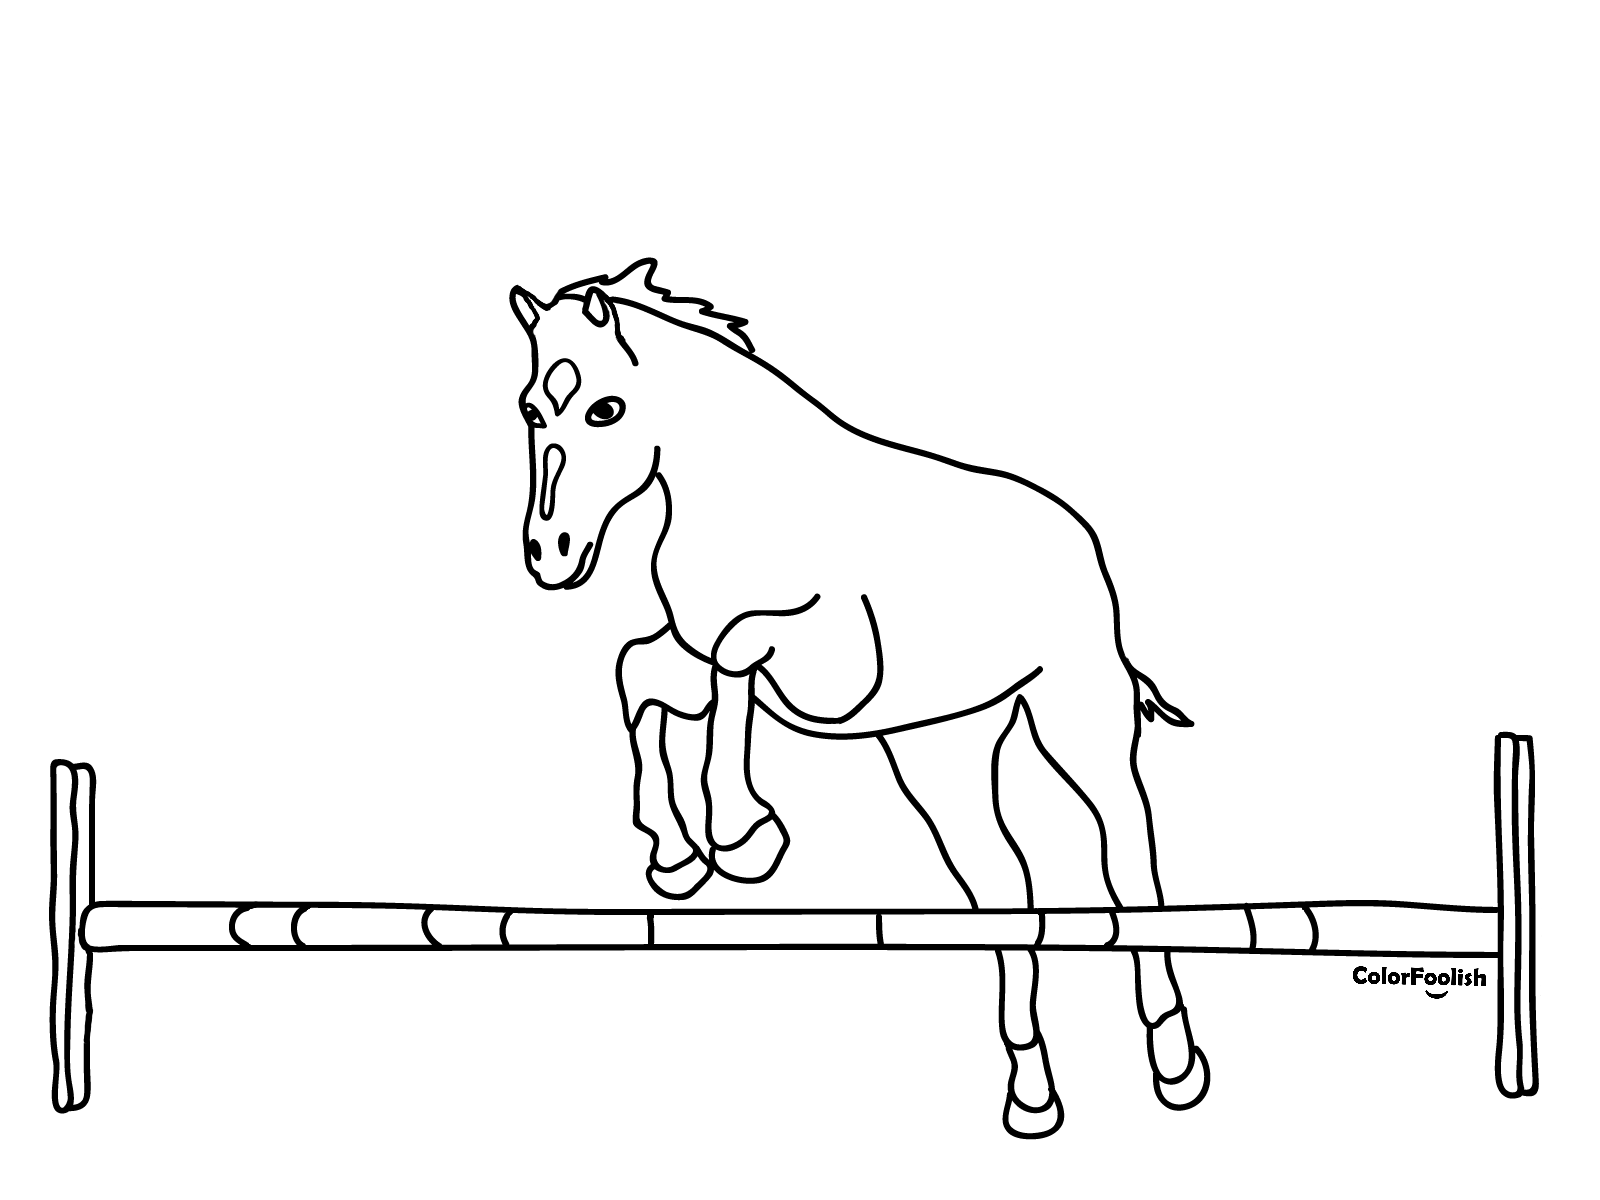 Coloring page of a horse jumping over a hurdle